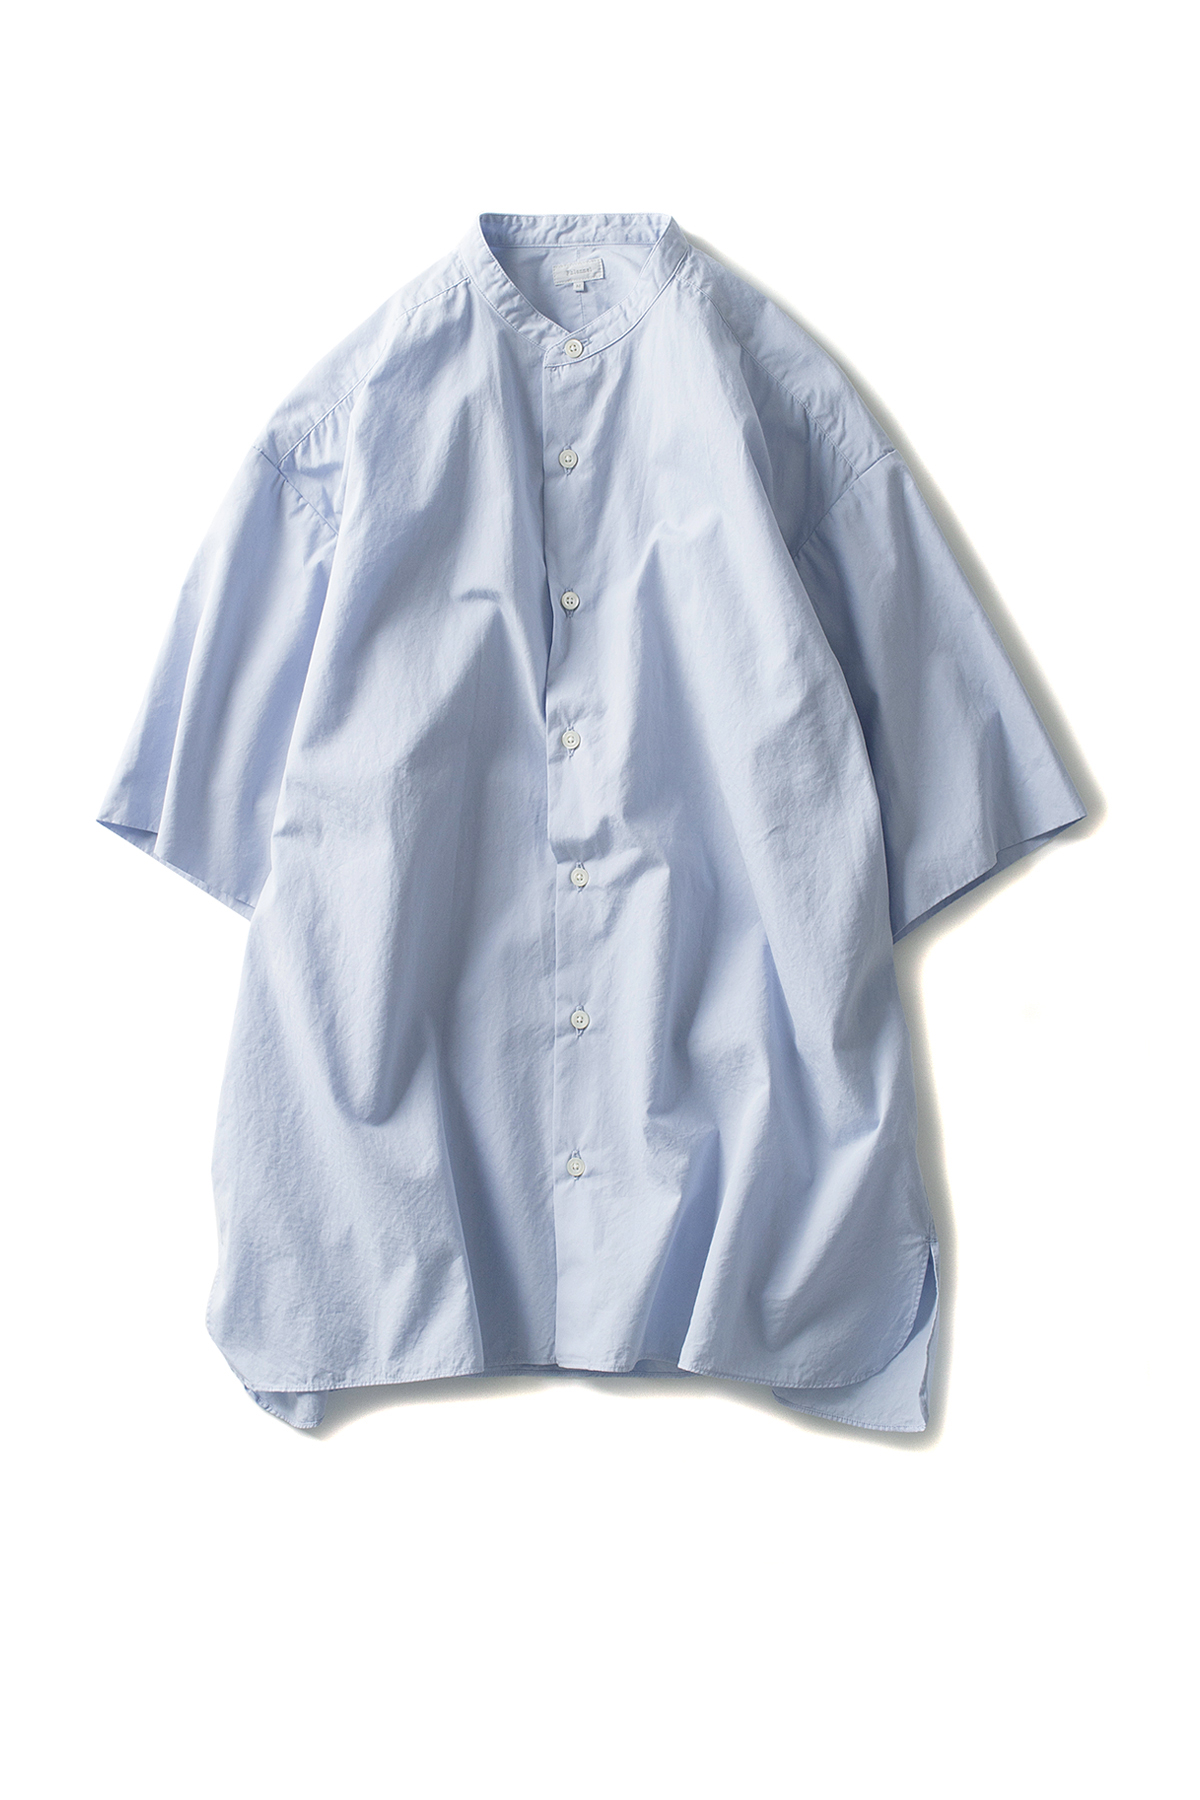 Phlannel : Super Fine Poplin Roomy Shirts (Light Blue)